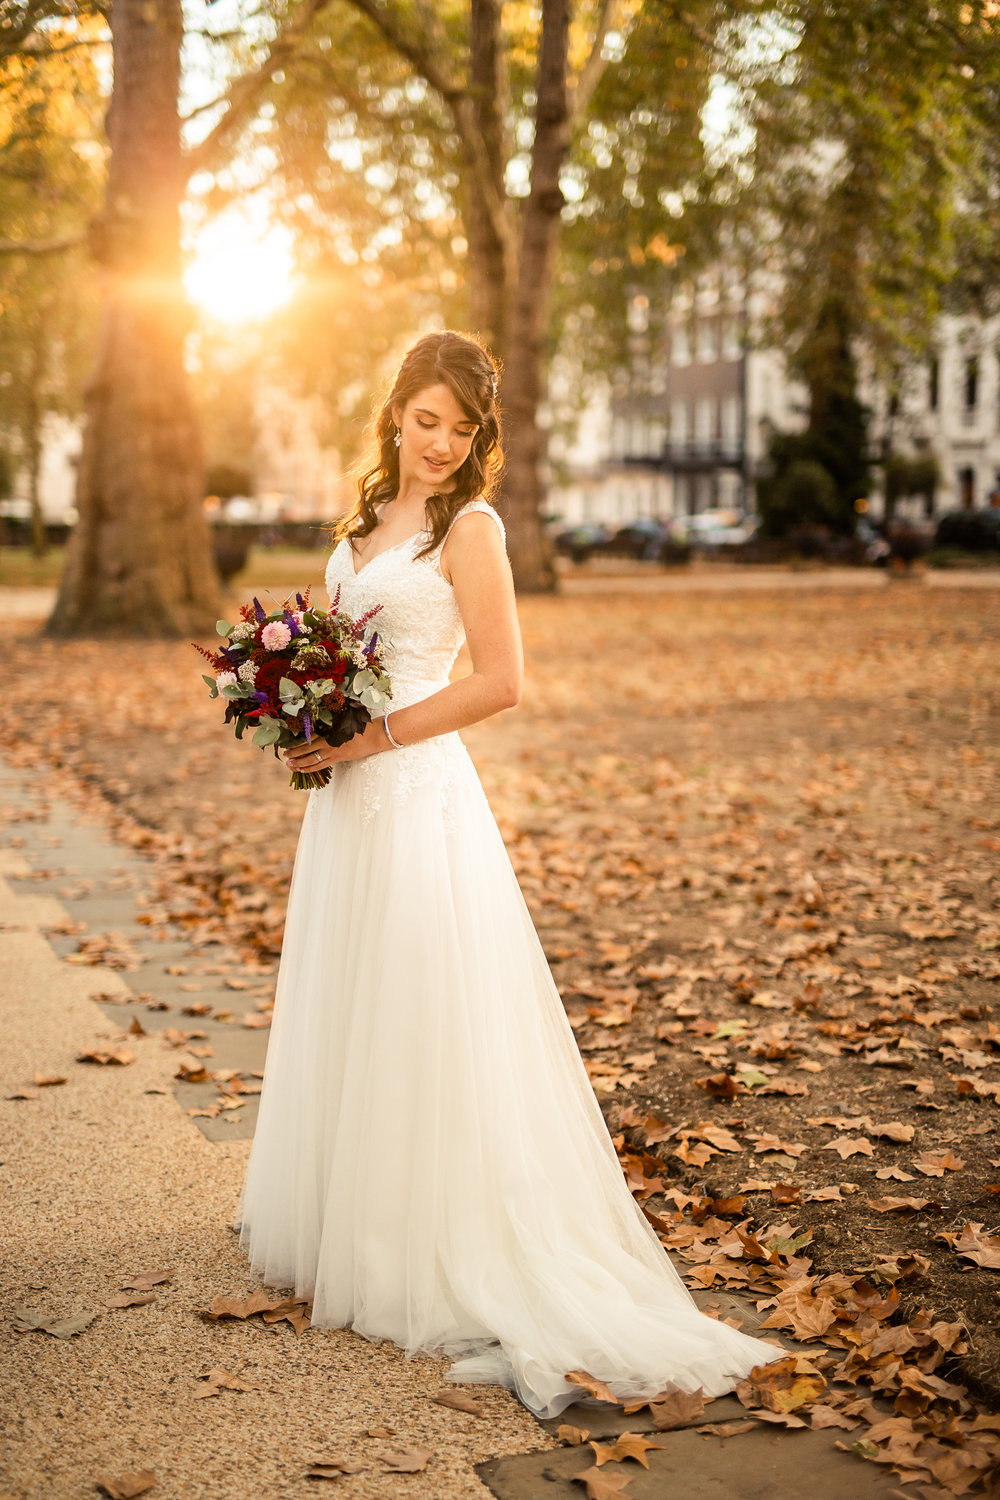 VDB_Mayfair_London_Wedding_Photographer071.jpg